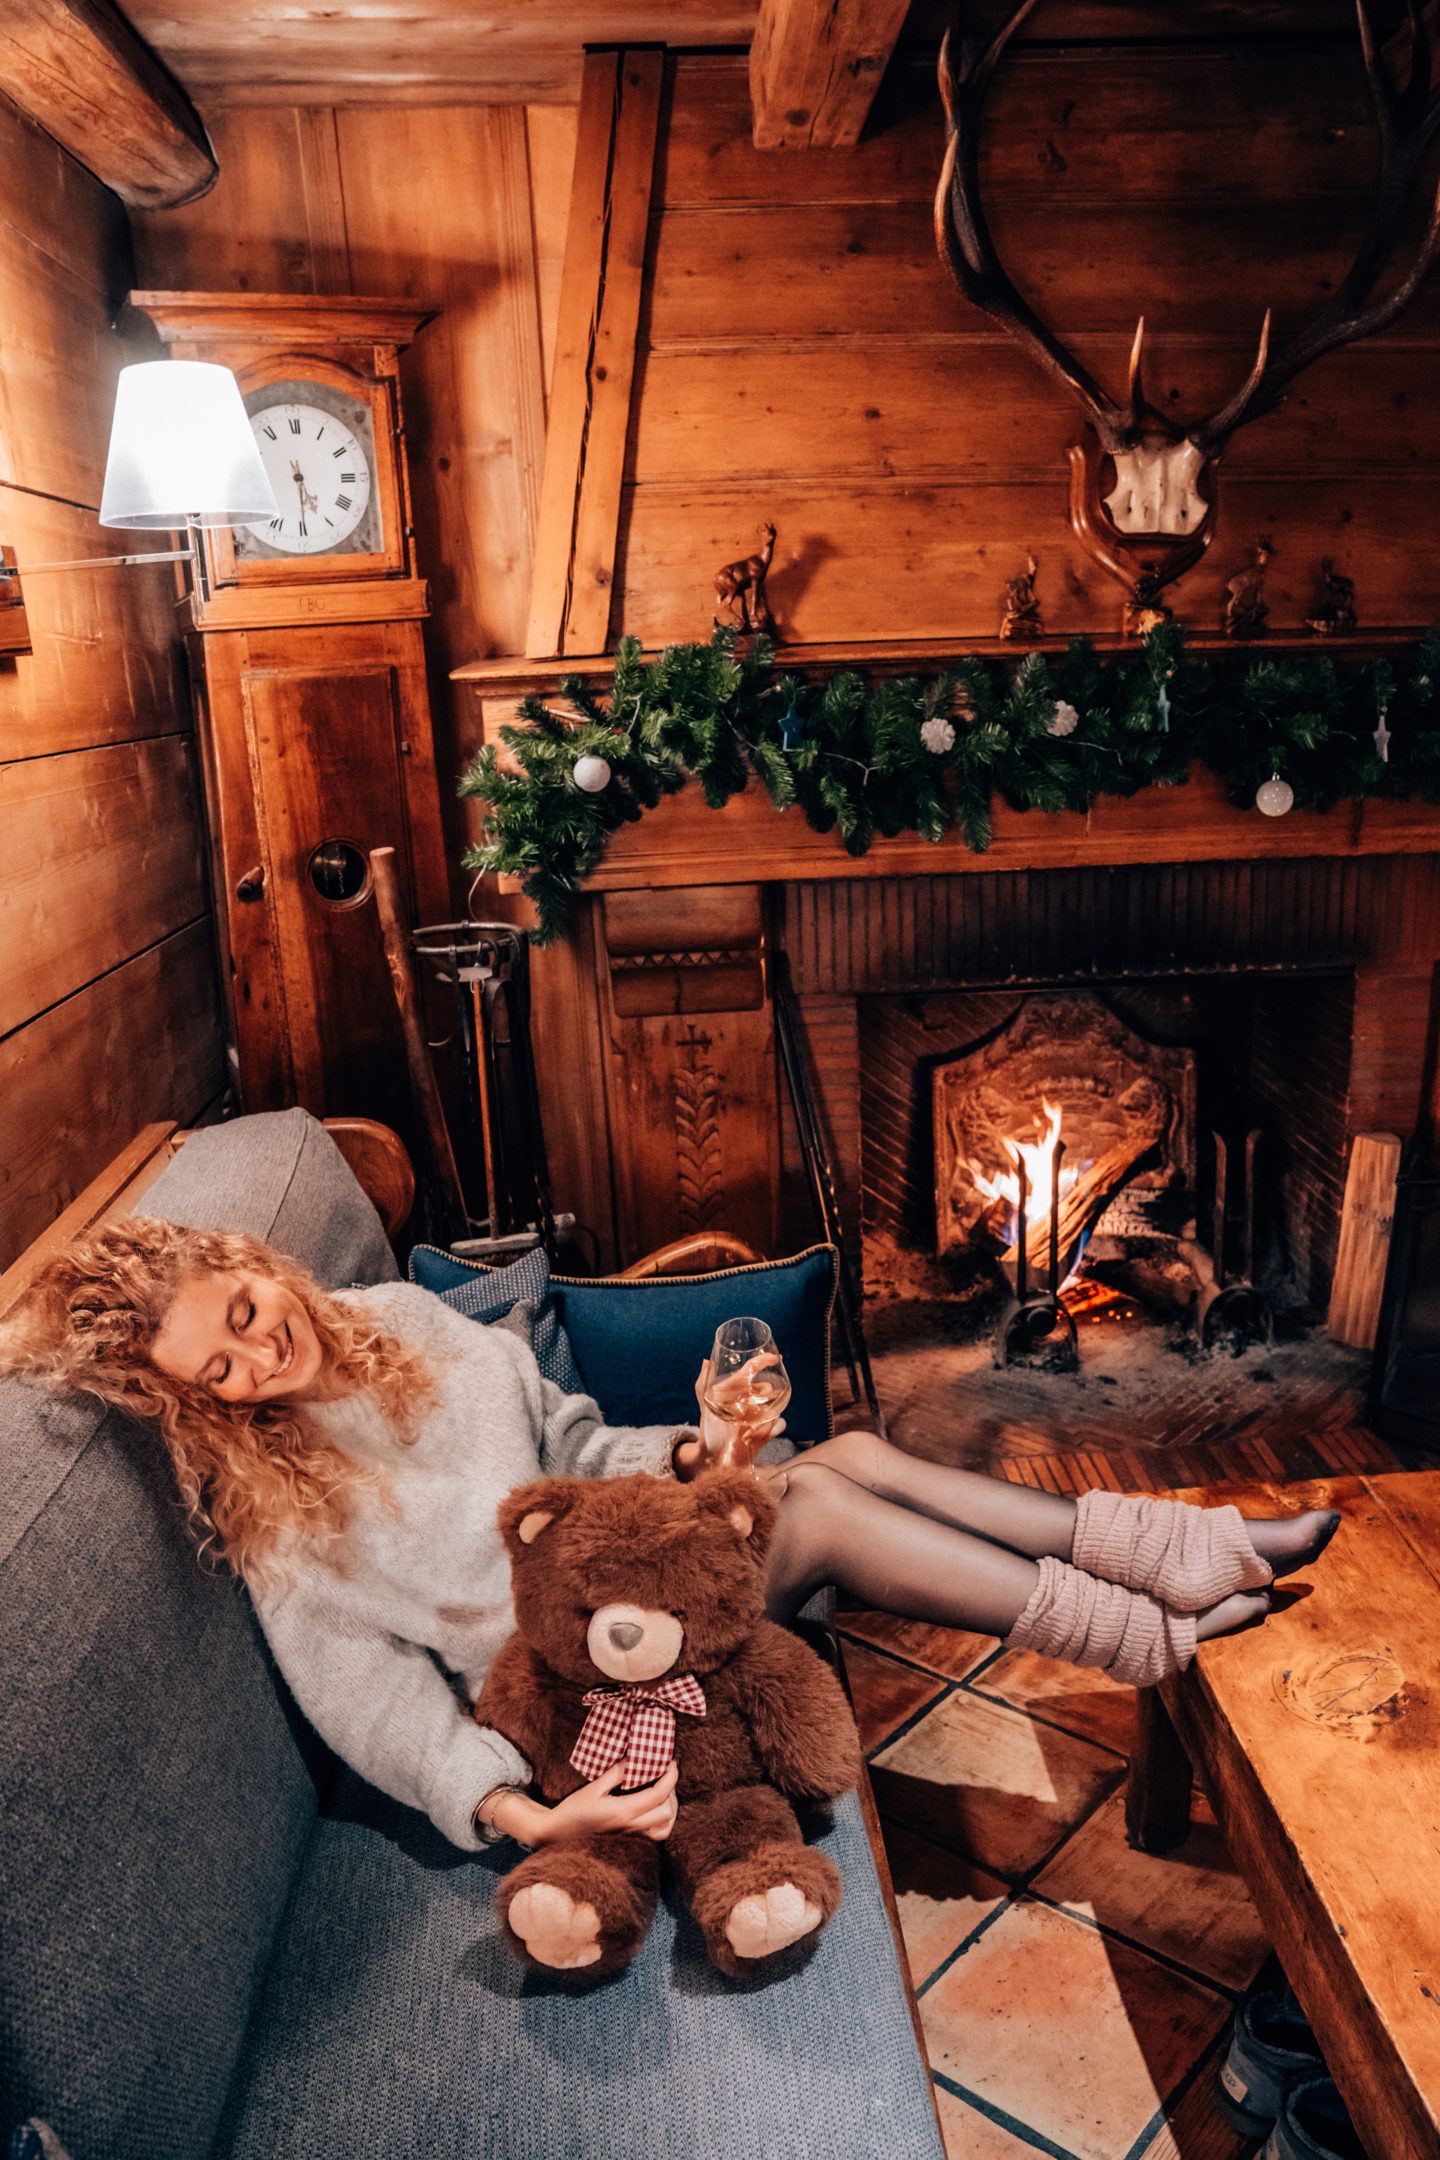 Chimney and wine date in a mountain cabin hotel